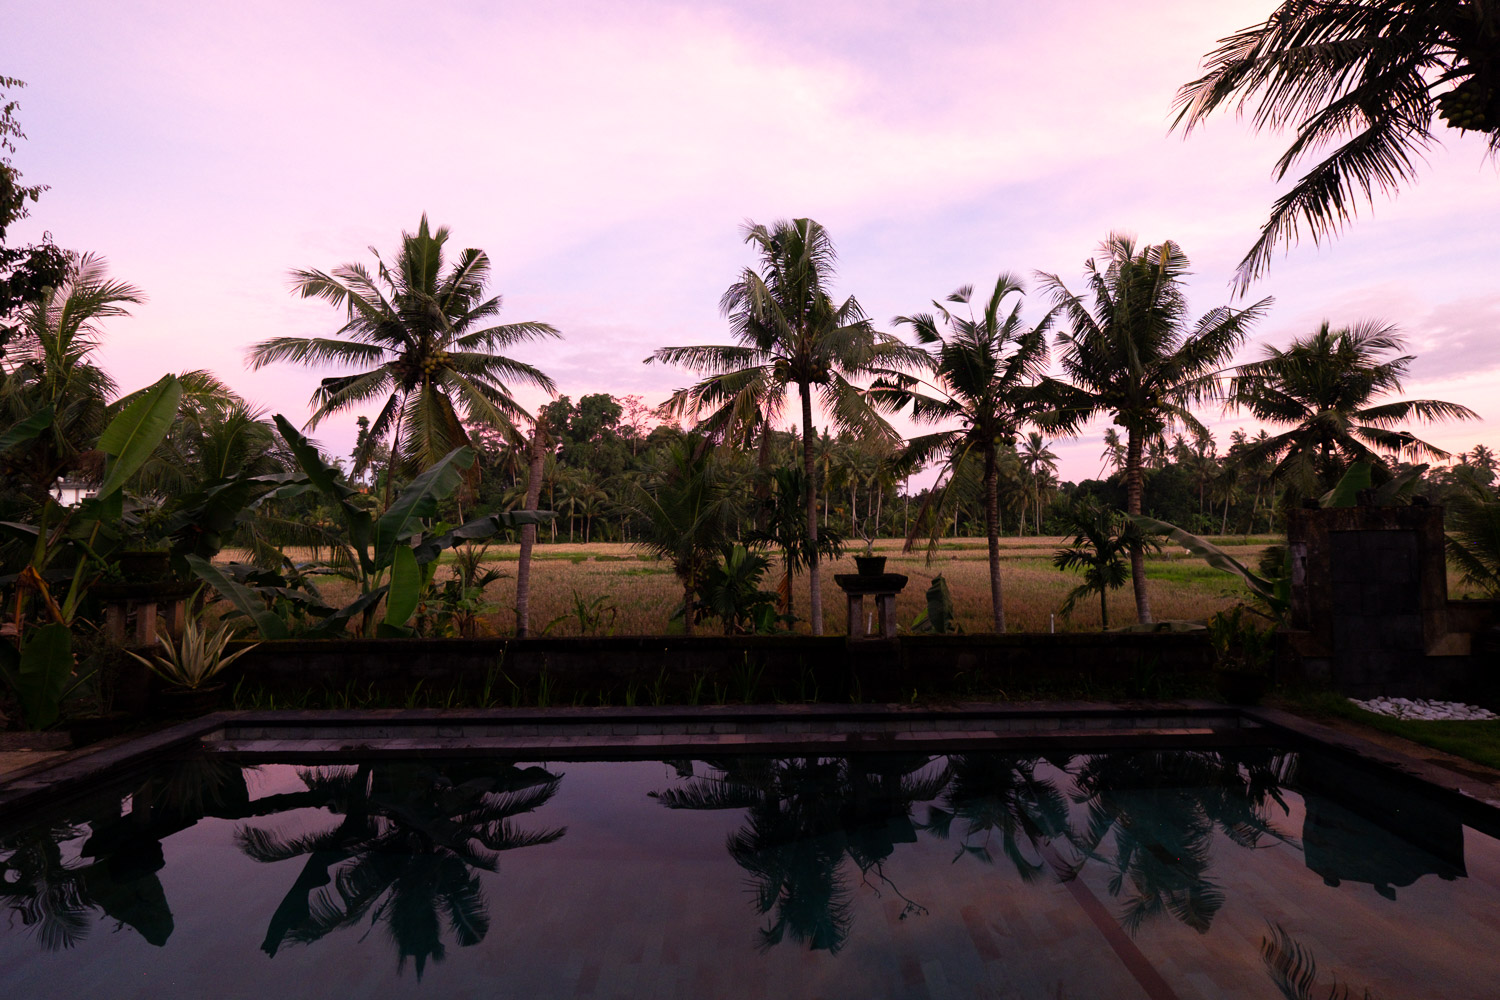 The view from my villa in Ubud Bali